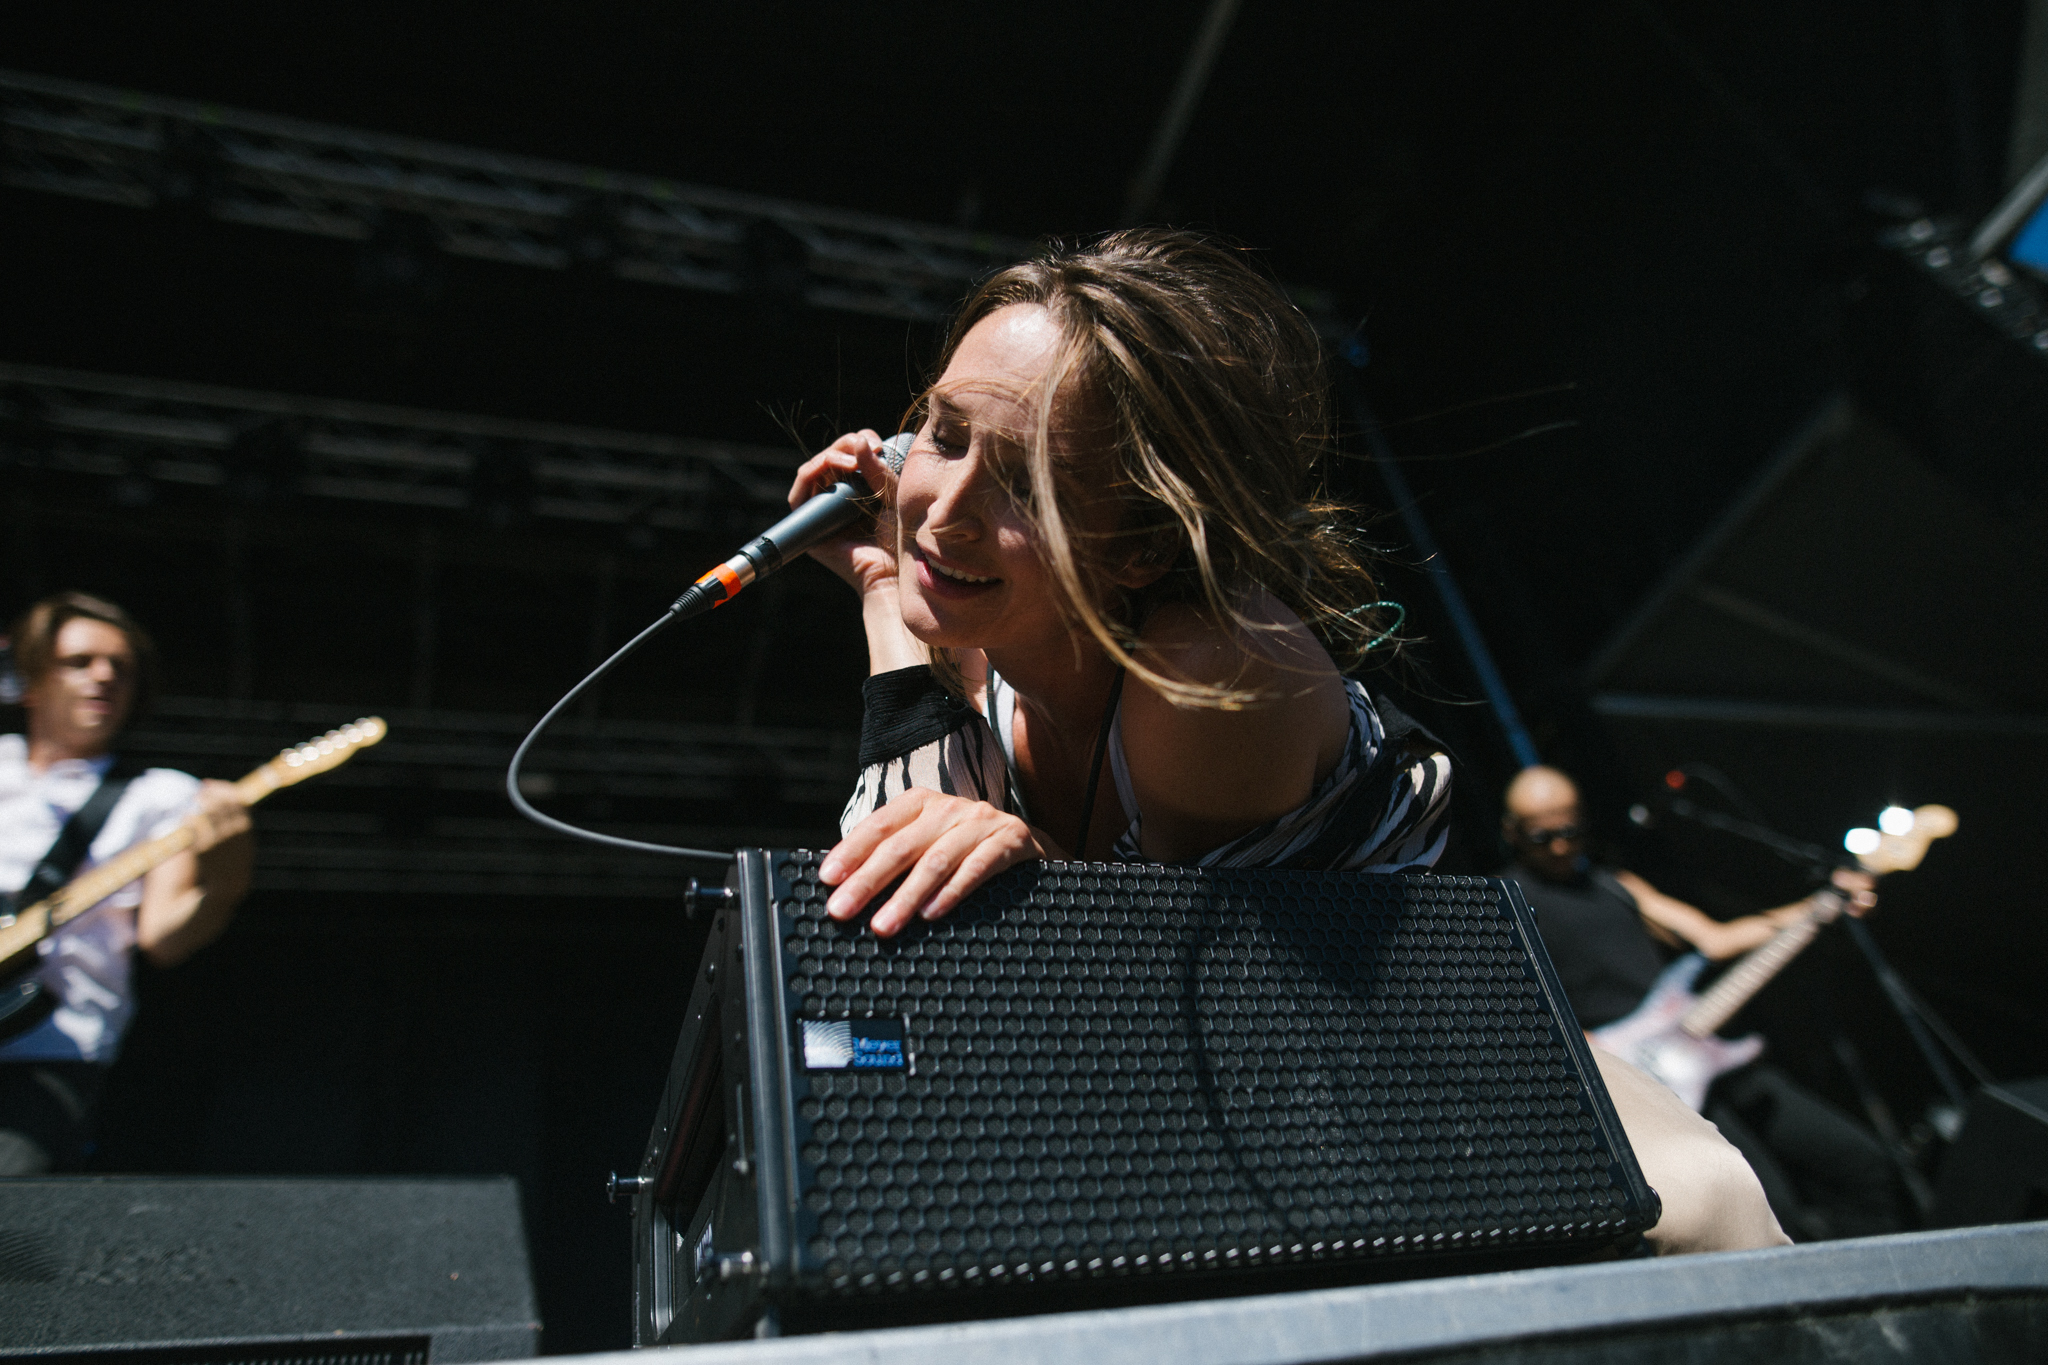 July Talk - Photo by Lindsey Blane